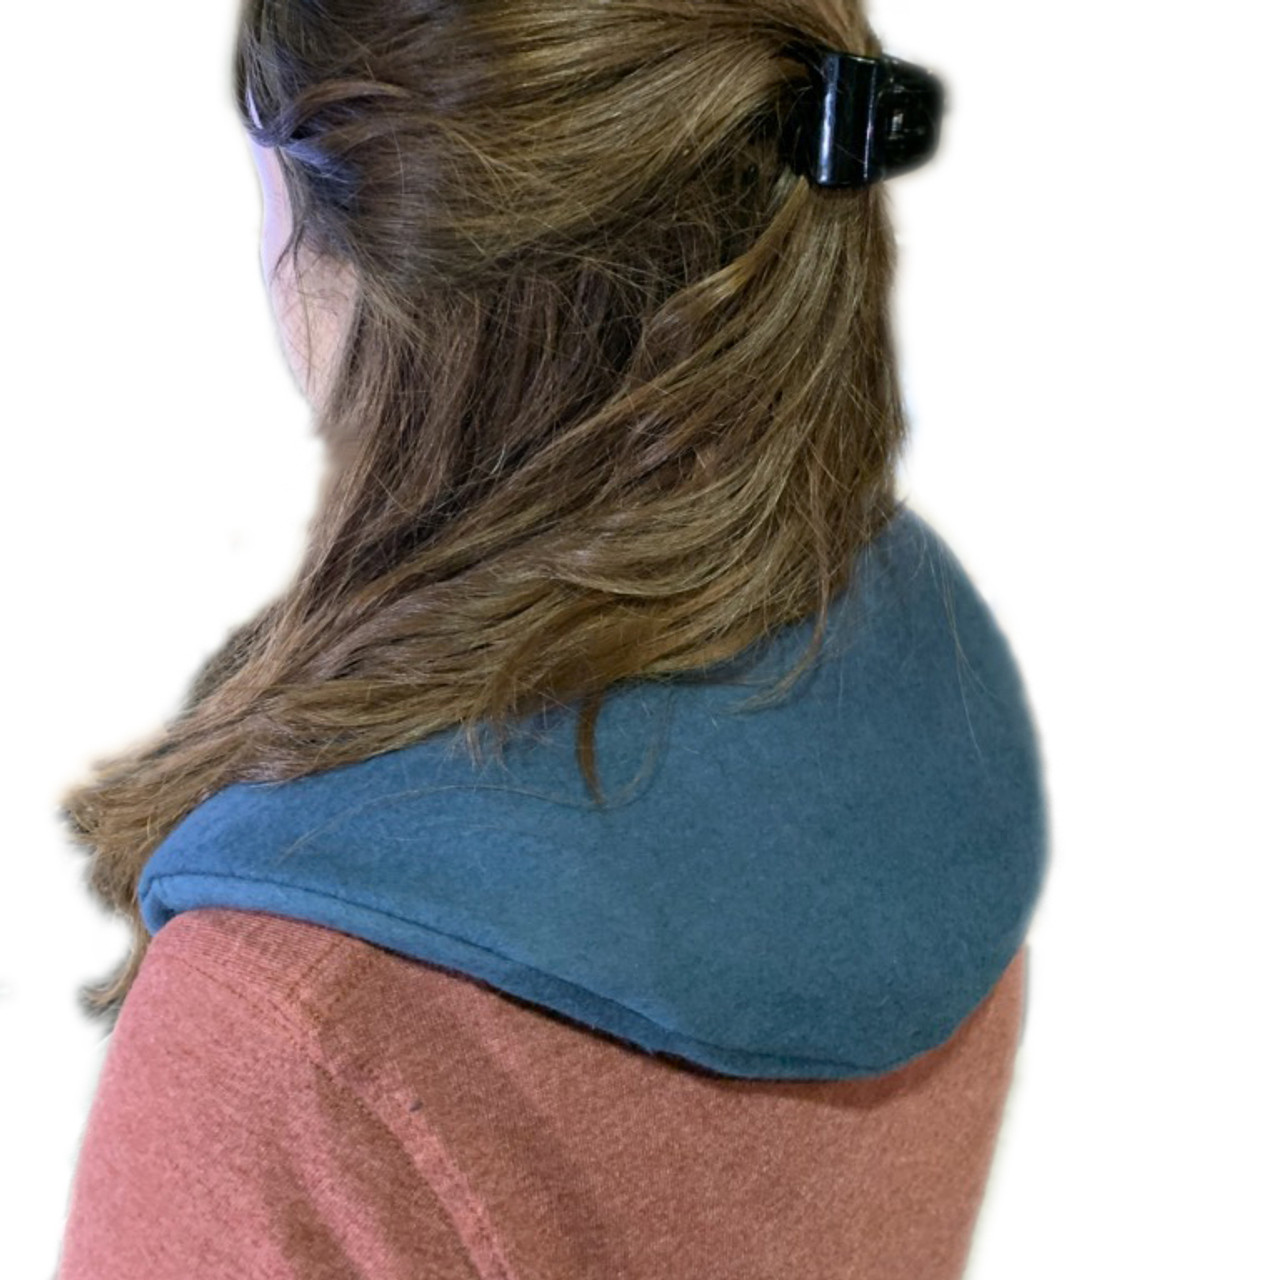 Thera Pac with removable organic fleece cover in Navy (shown) or Lavender